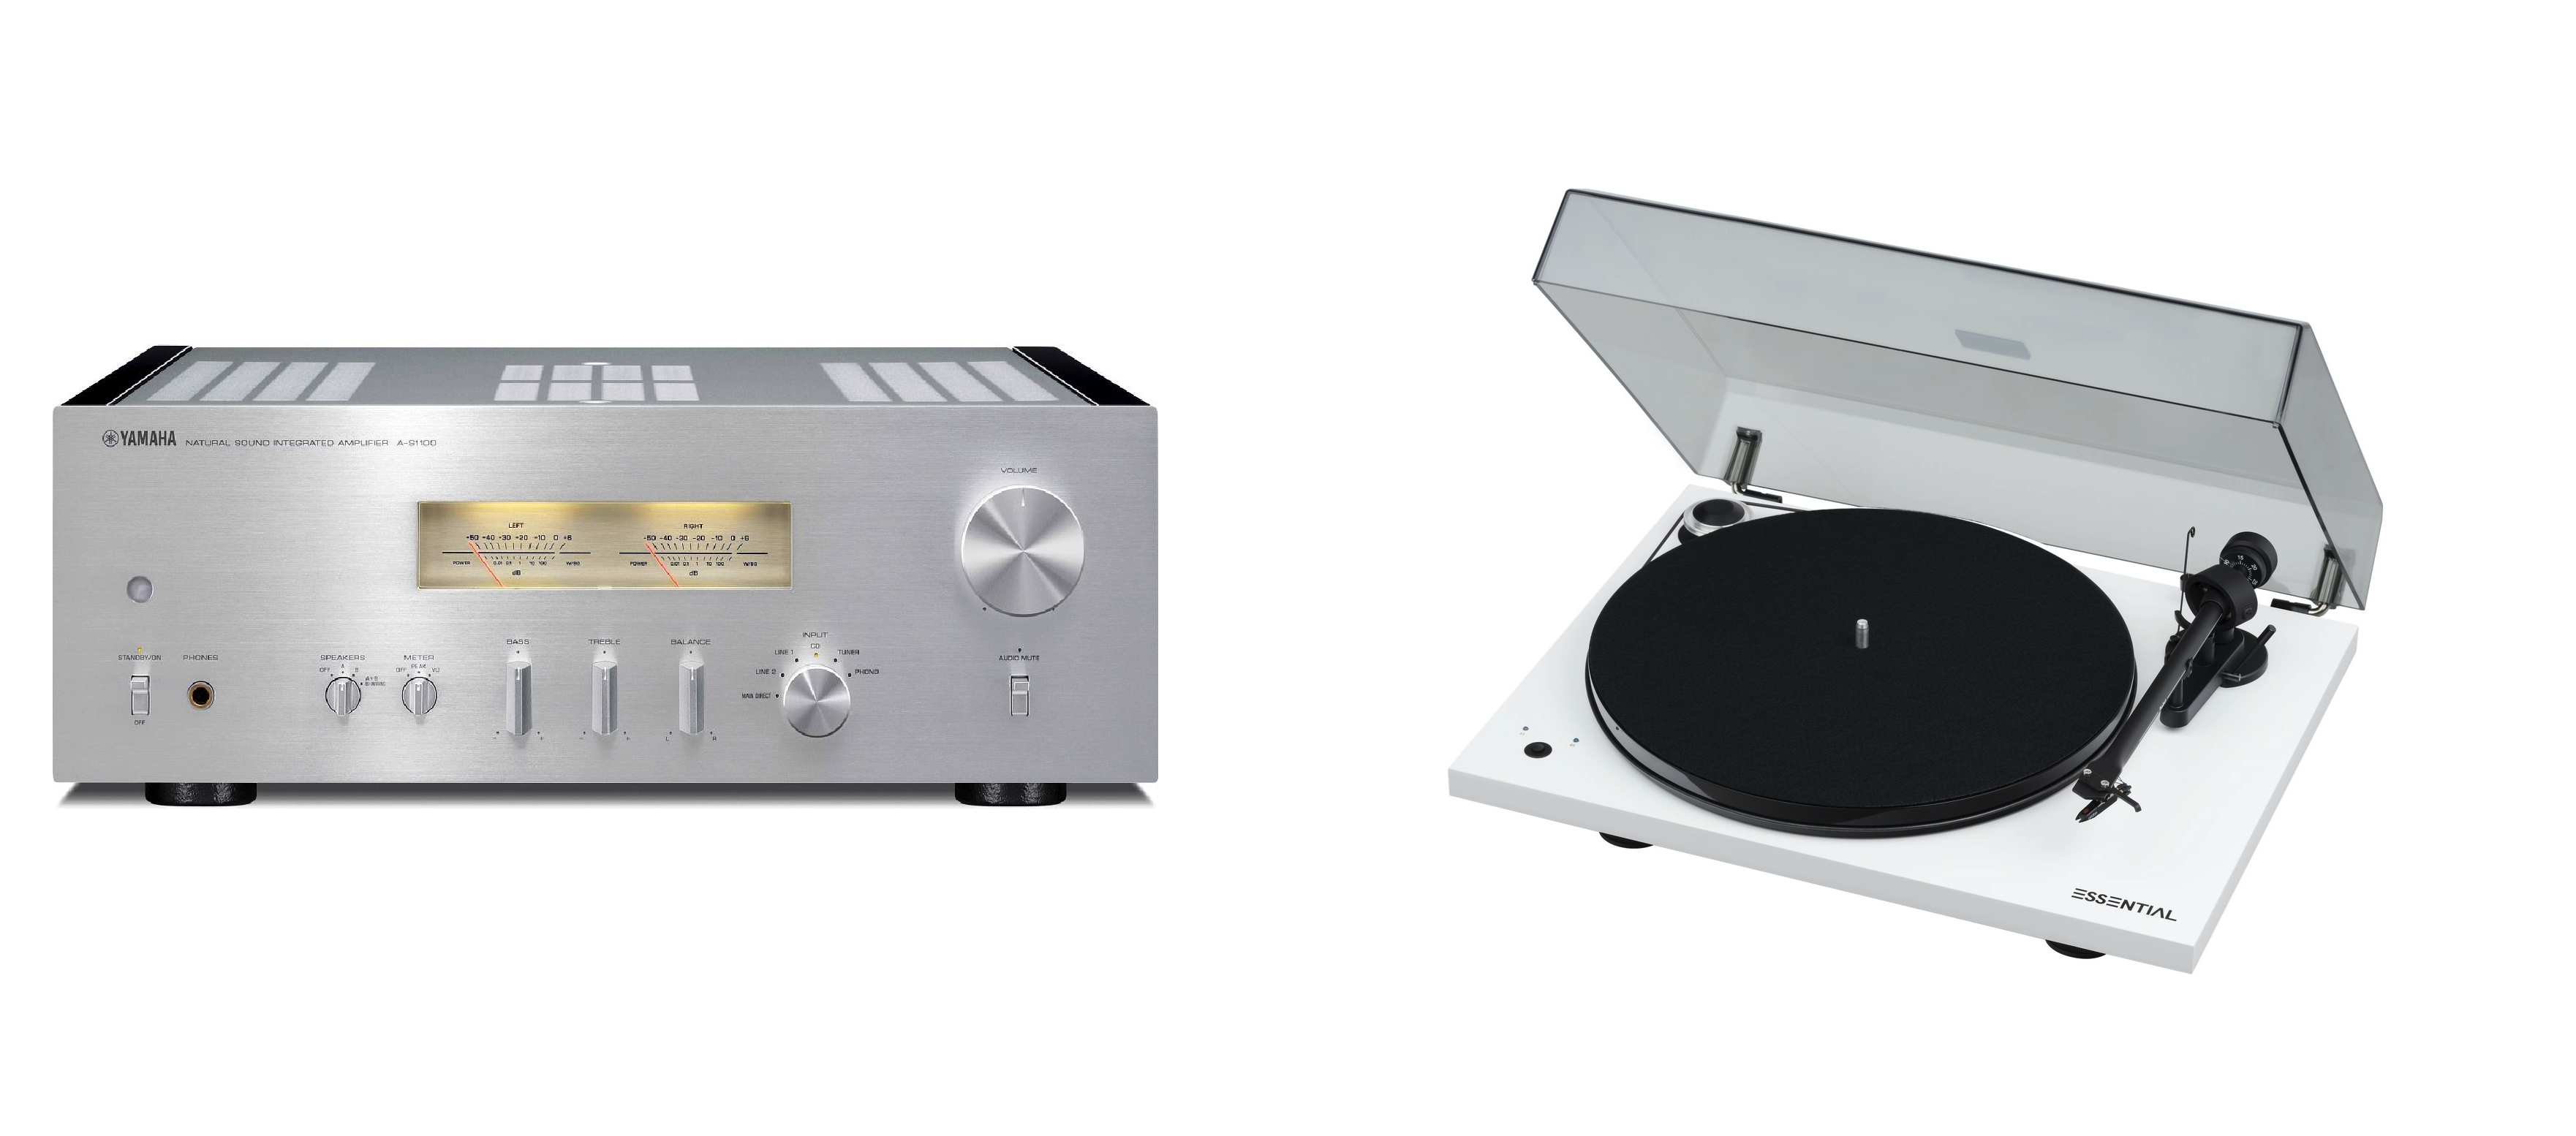 YAMAHA A-S1200 + Pro-Ject Essential III RecordMaster White + OM10